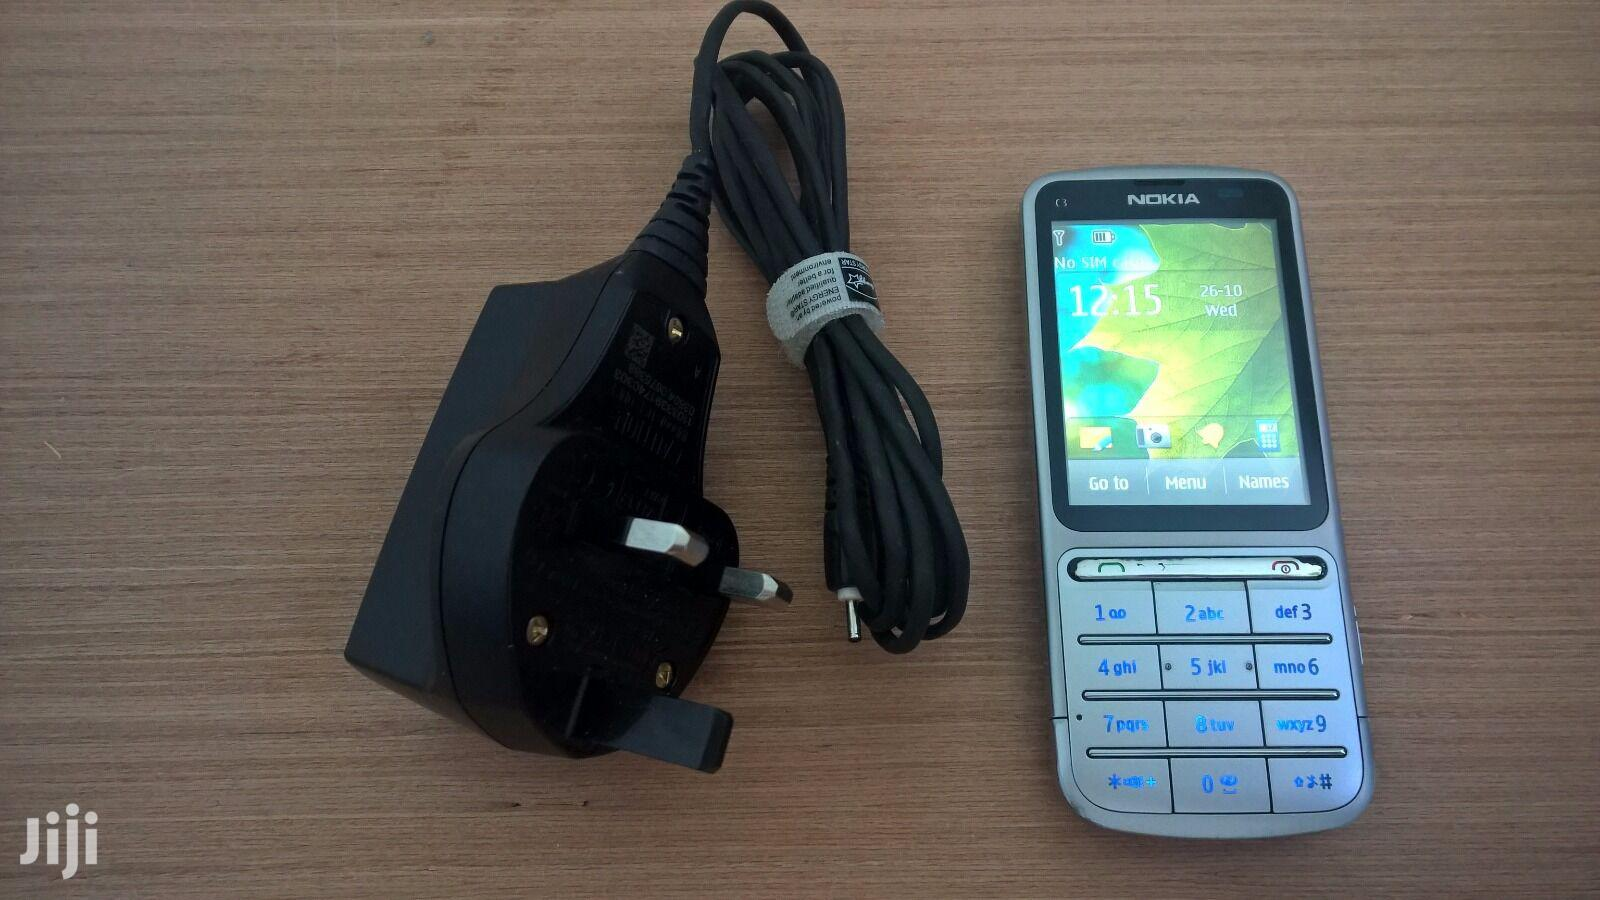 Archive: Nokia C3 01 Touch and Type 512 MB Silver